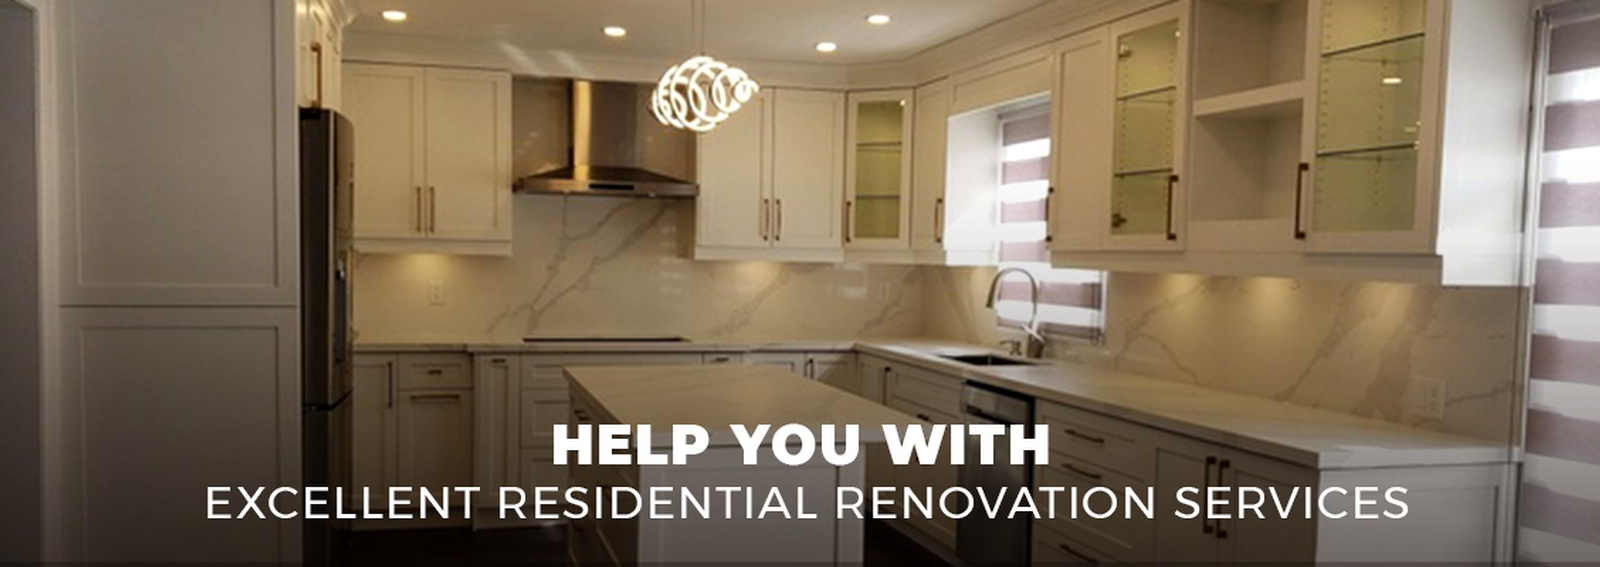 Help You With Excellent Residential Renovation Services